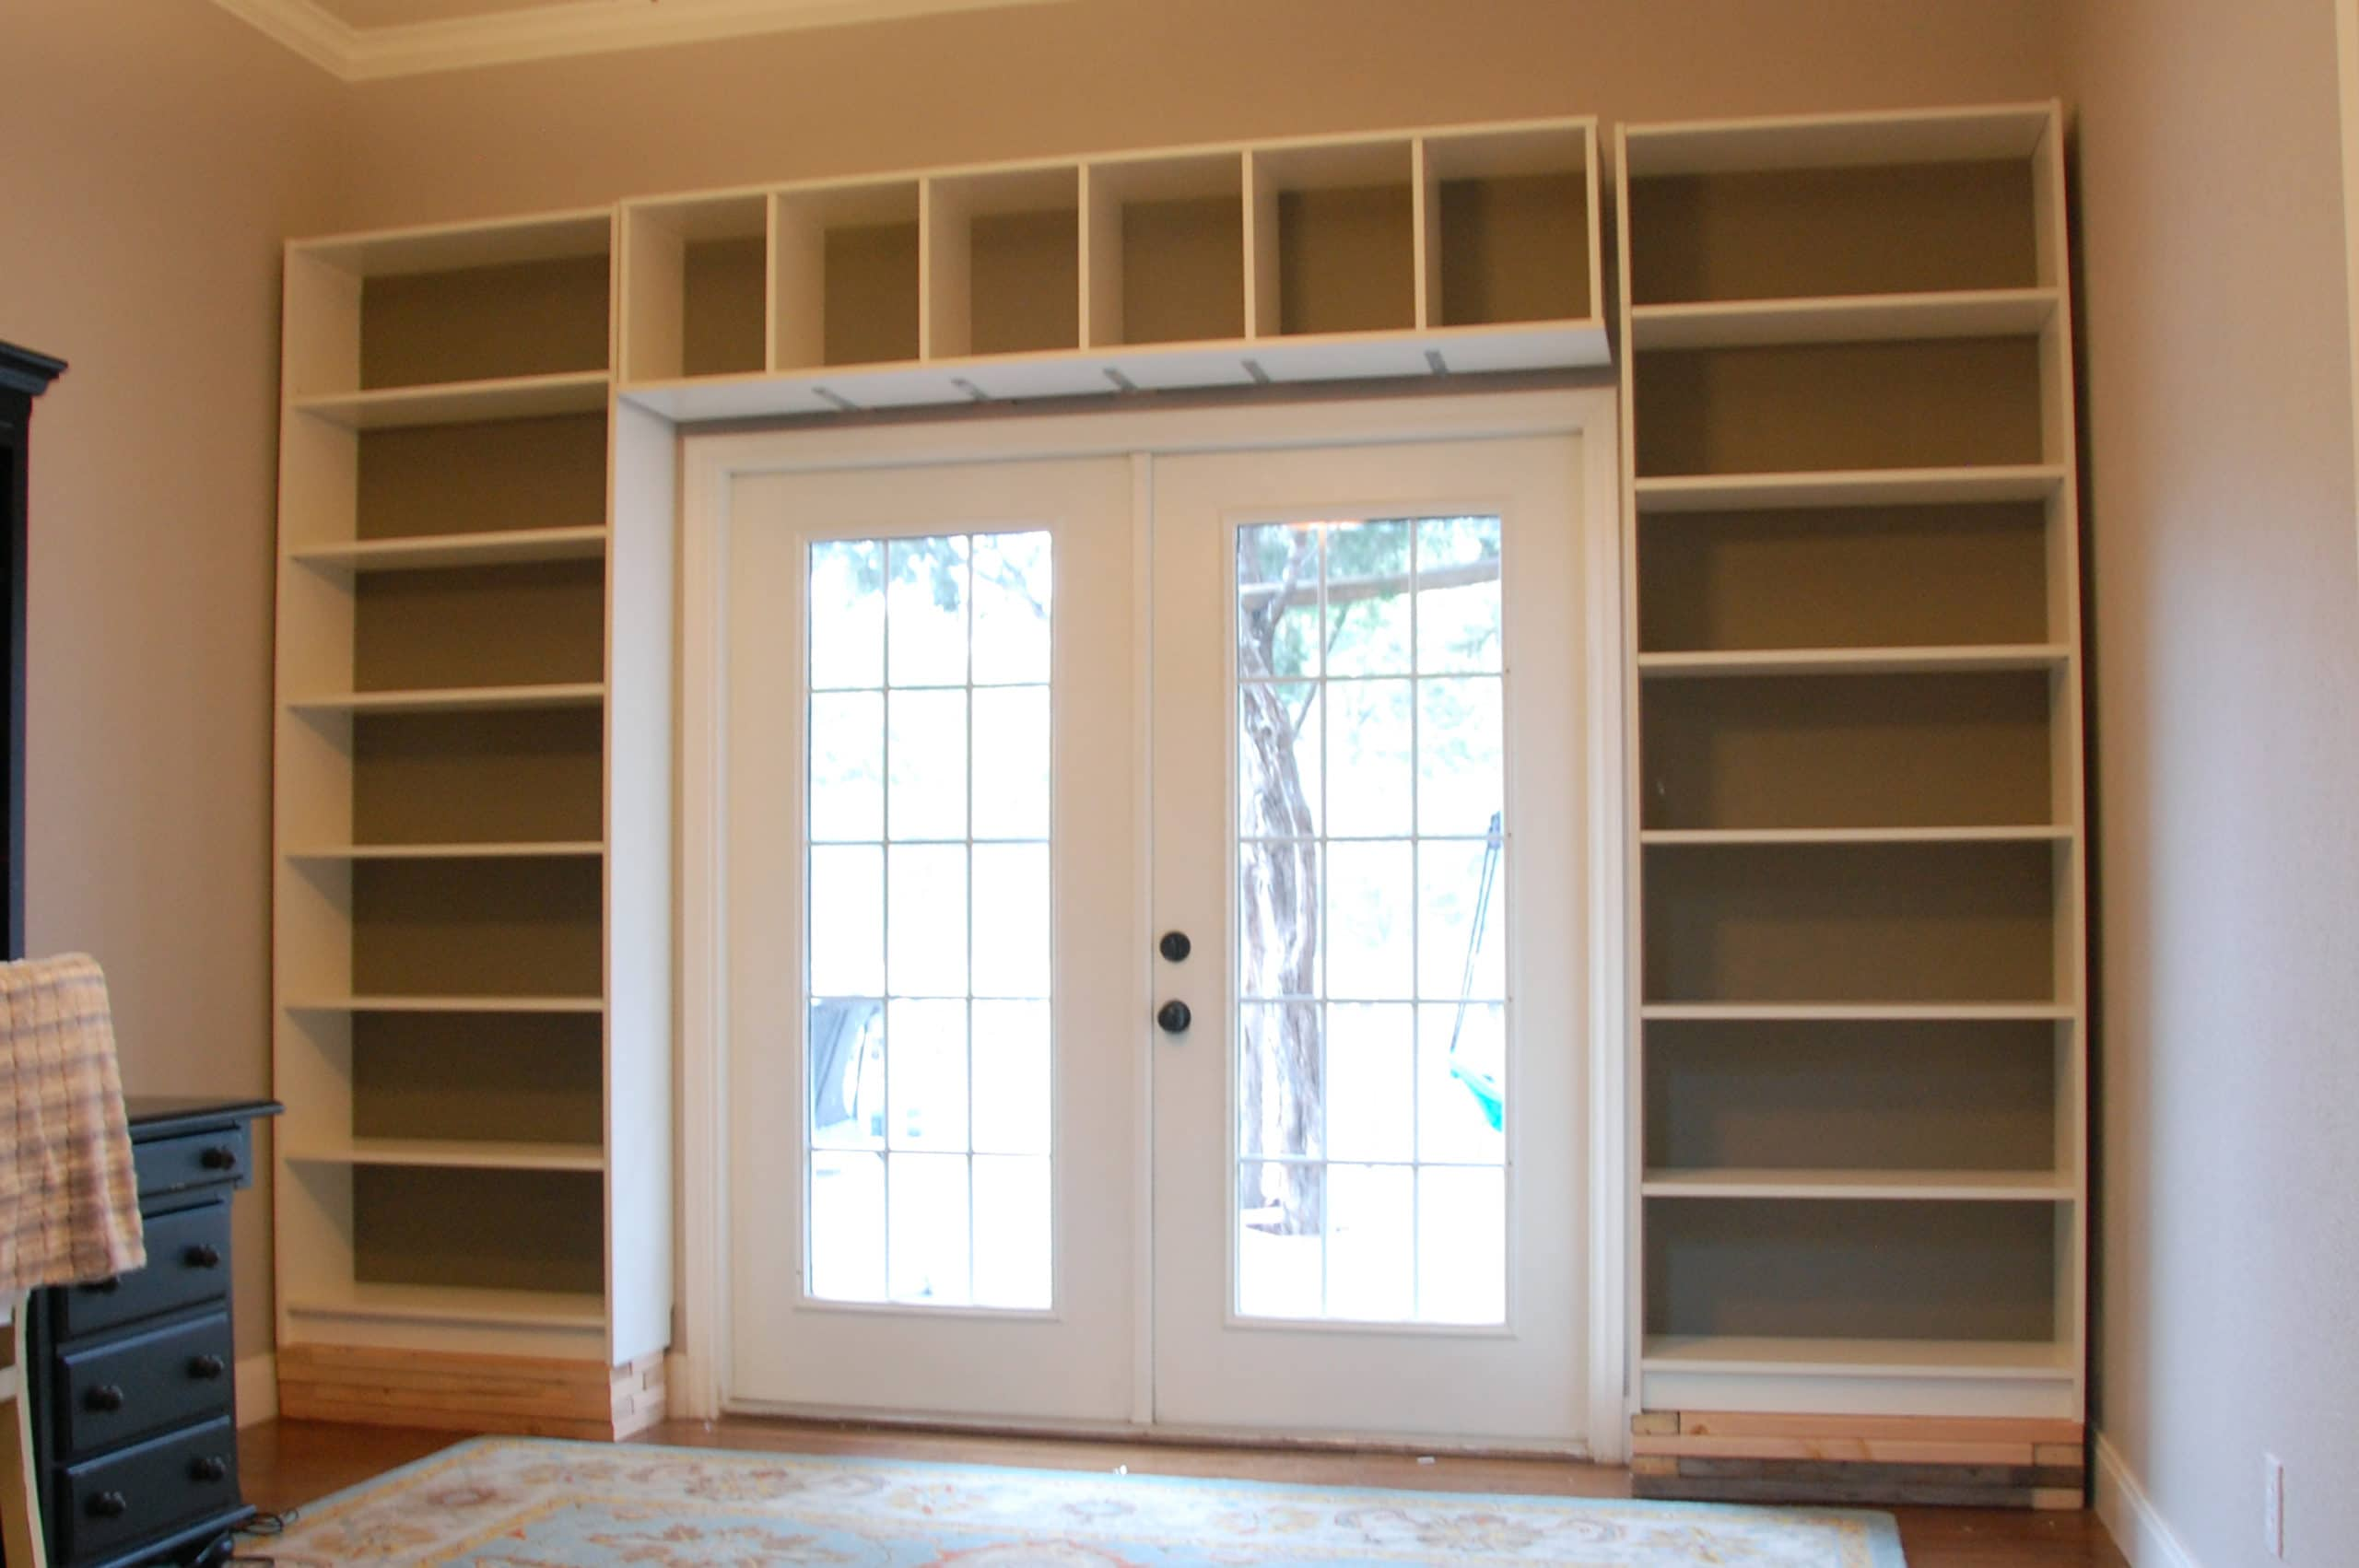 Bookcases installed but no trim